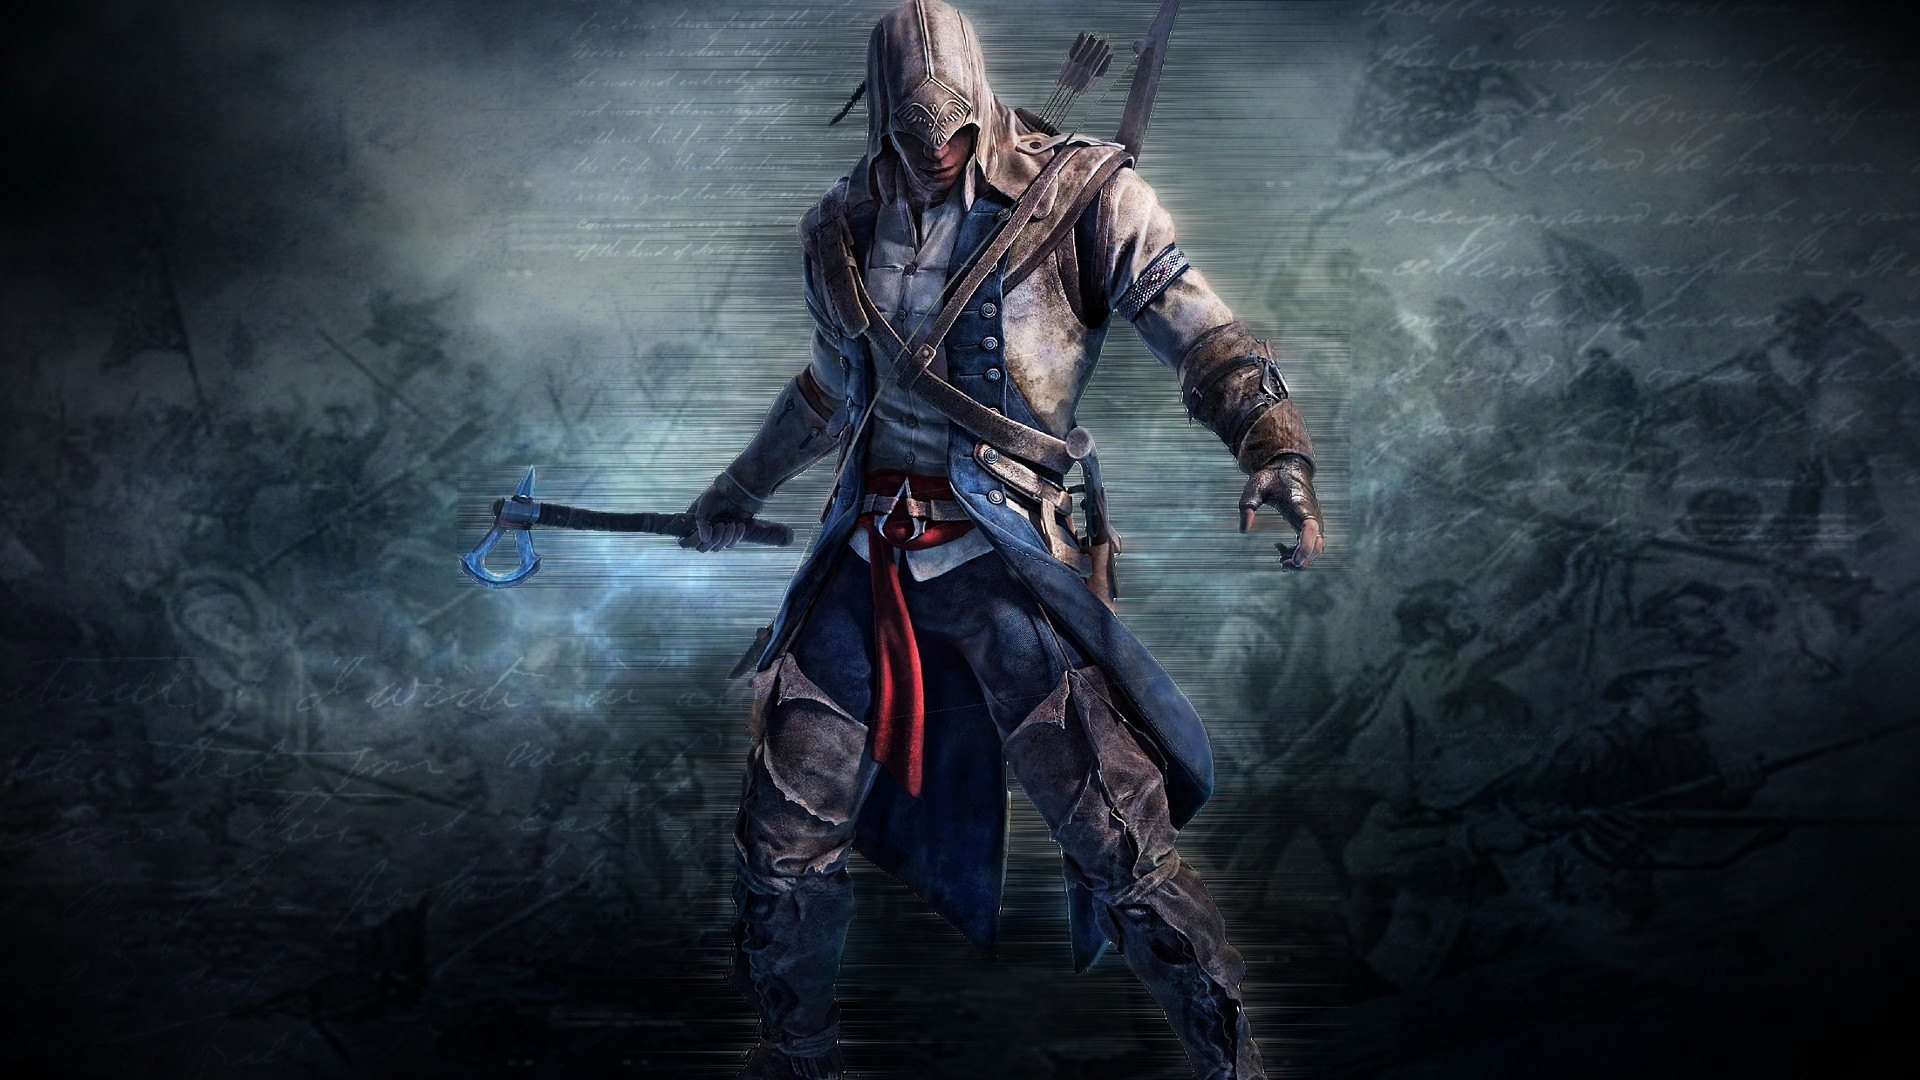 assassins creed 3 game wallpaper background